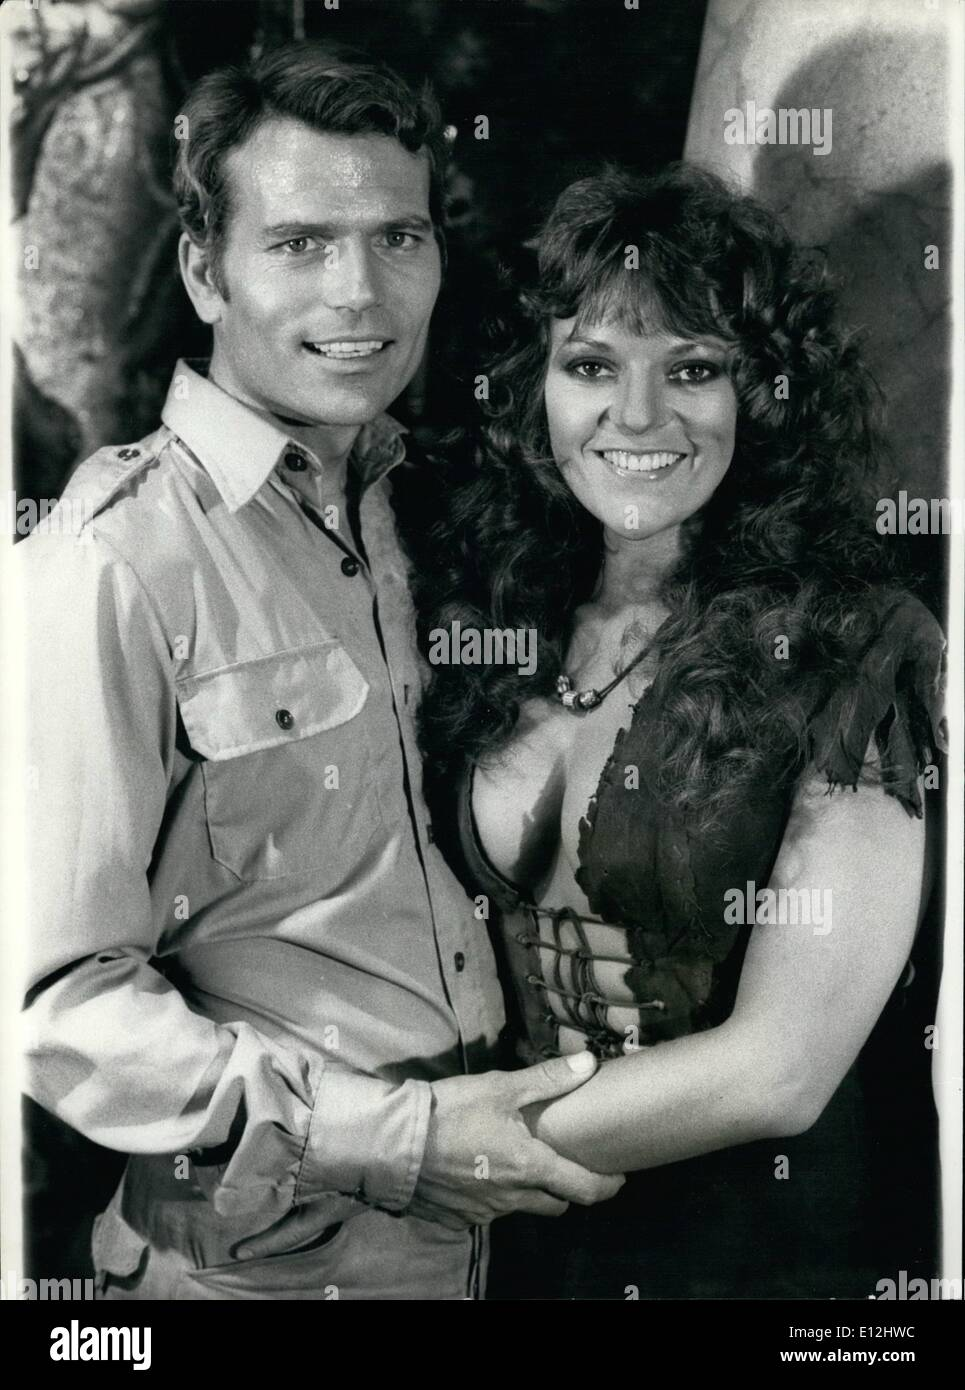 Feb. 24, 2012 - Chip off the old block.: This handsome rugged looking man photographed with the British film actress Dana Gillespie as Patrick Wayne the 37 year old son of Big John Wayne. He is in England to star in the film, ''The People That Time Forgot'' which also stars Doug McClure, and Dana Gillespie. - Stock Image